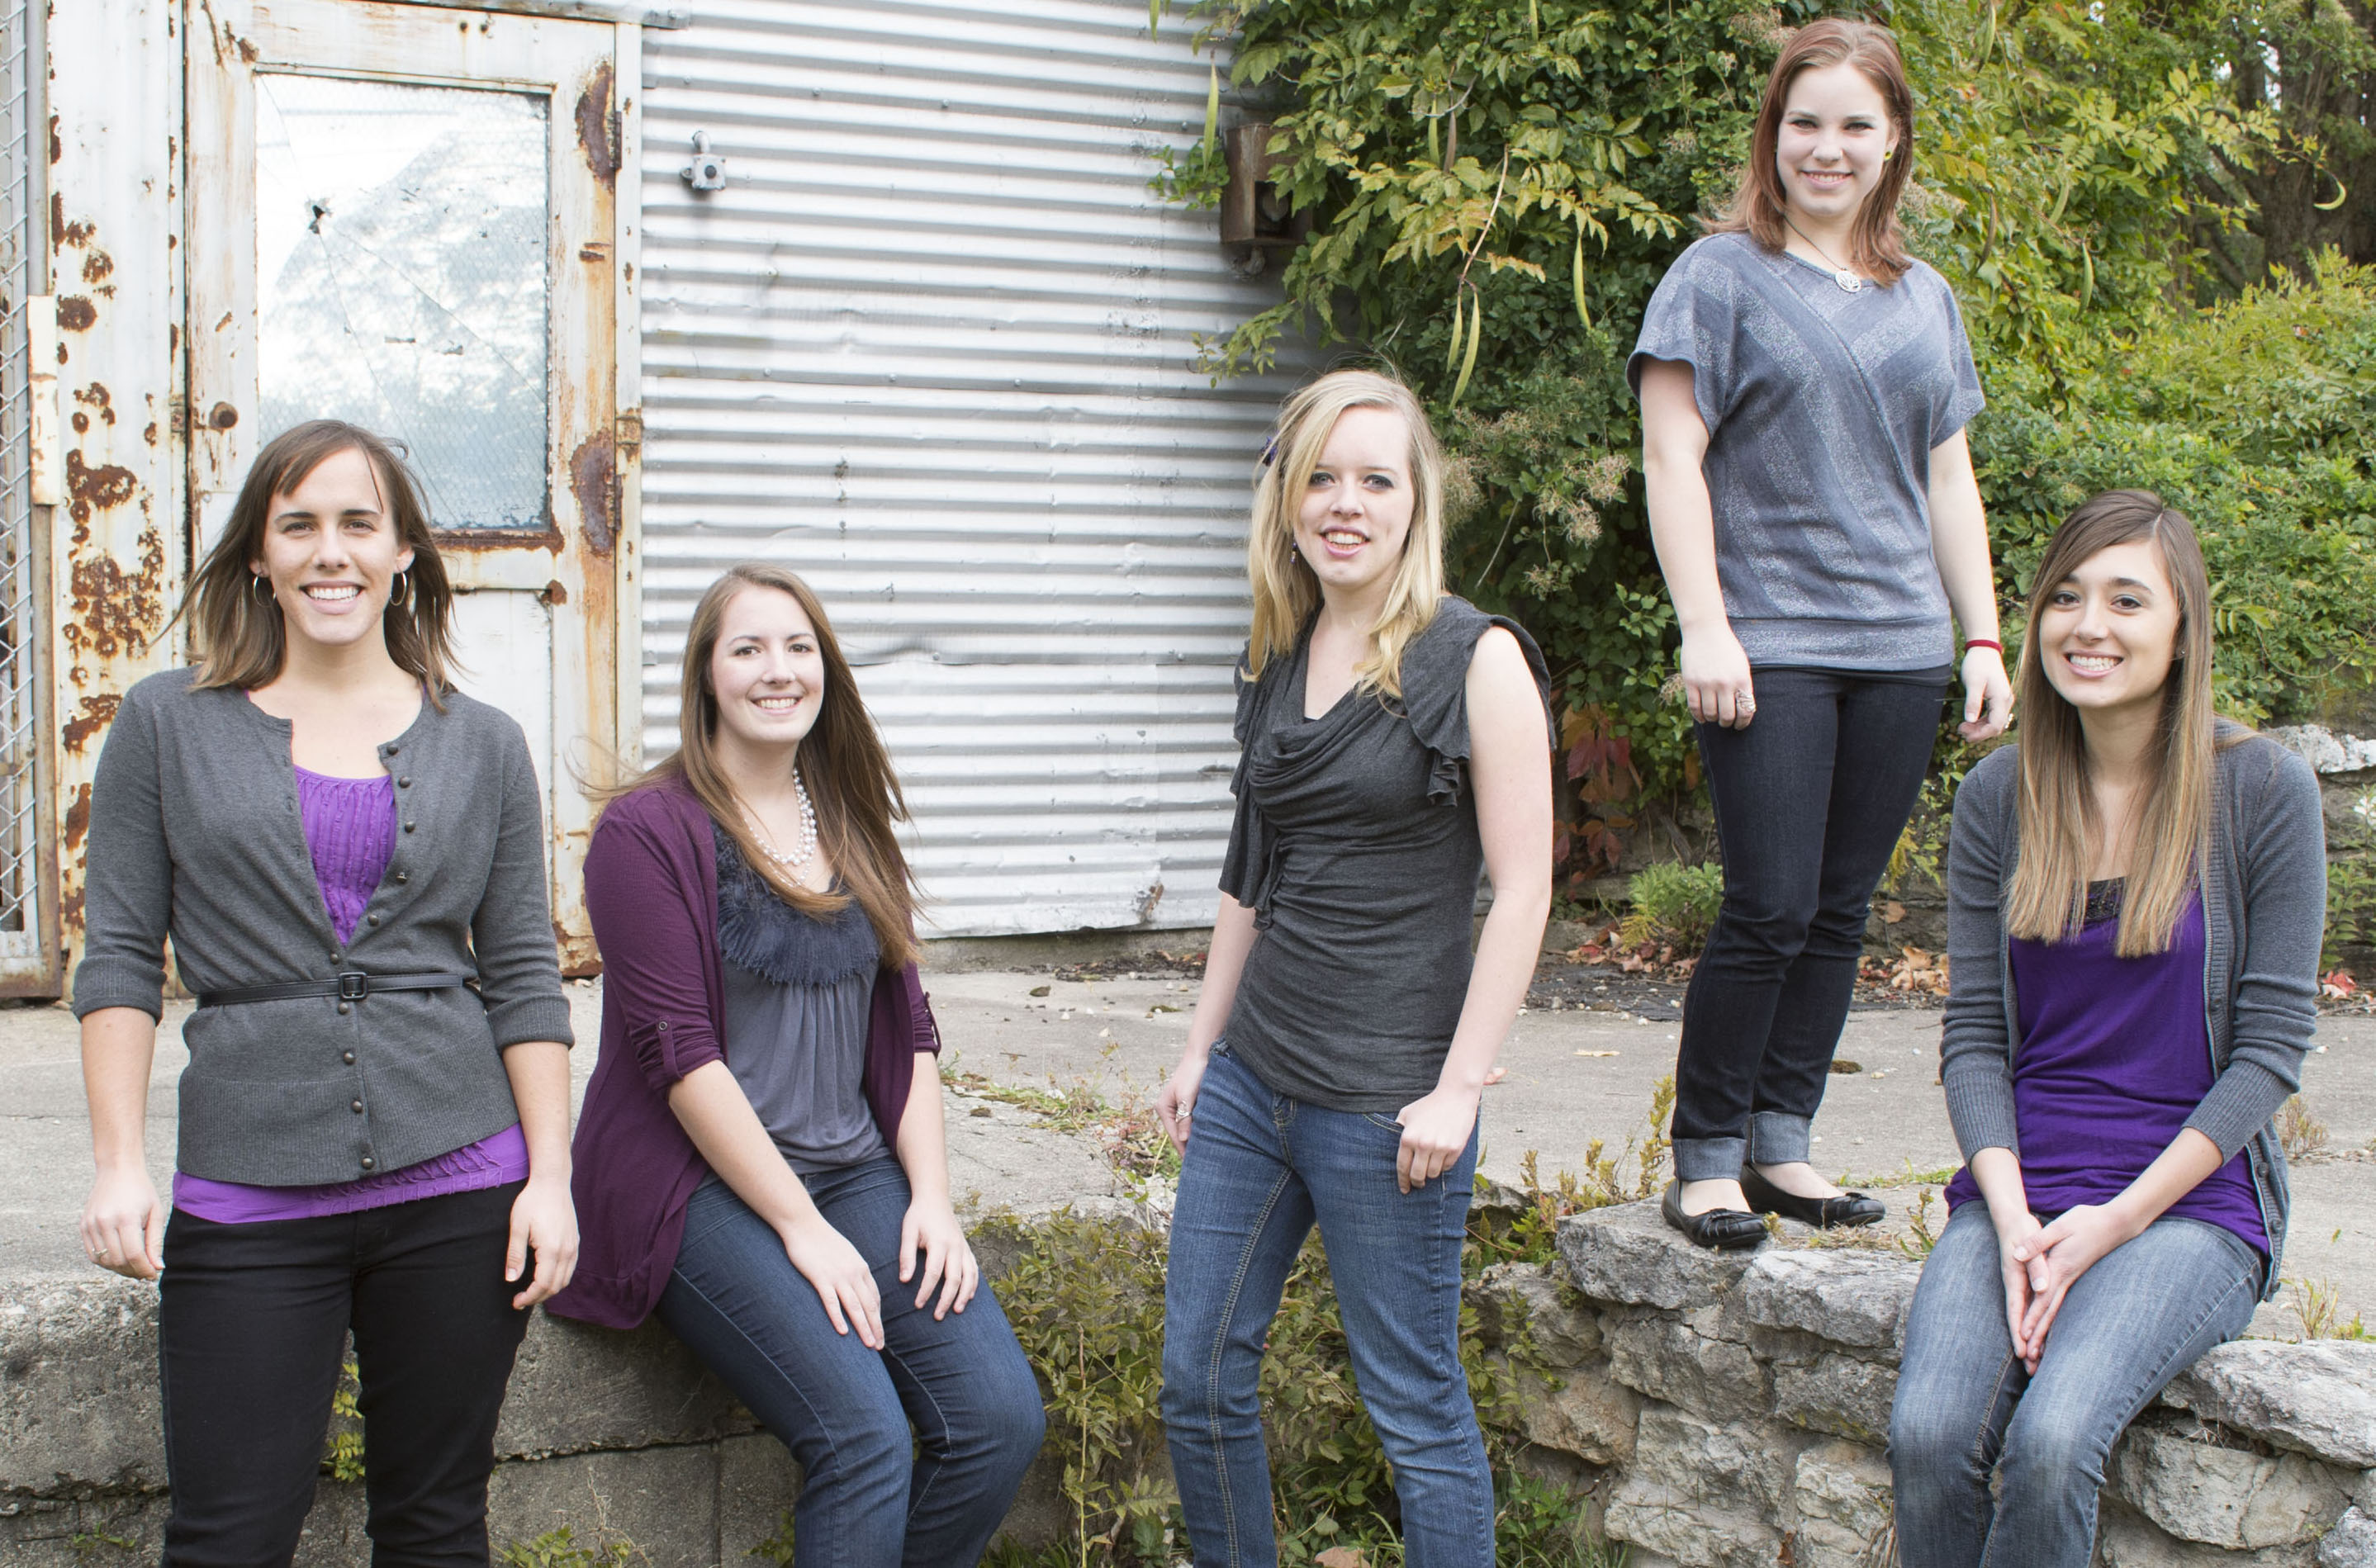 An all-female band leads worship for women's conferences on and off campus. Photo credit: Scott L. Huck/Cedarville University